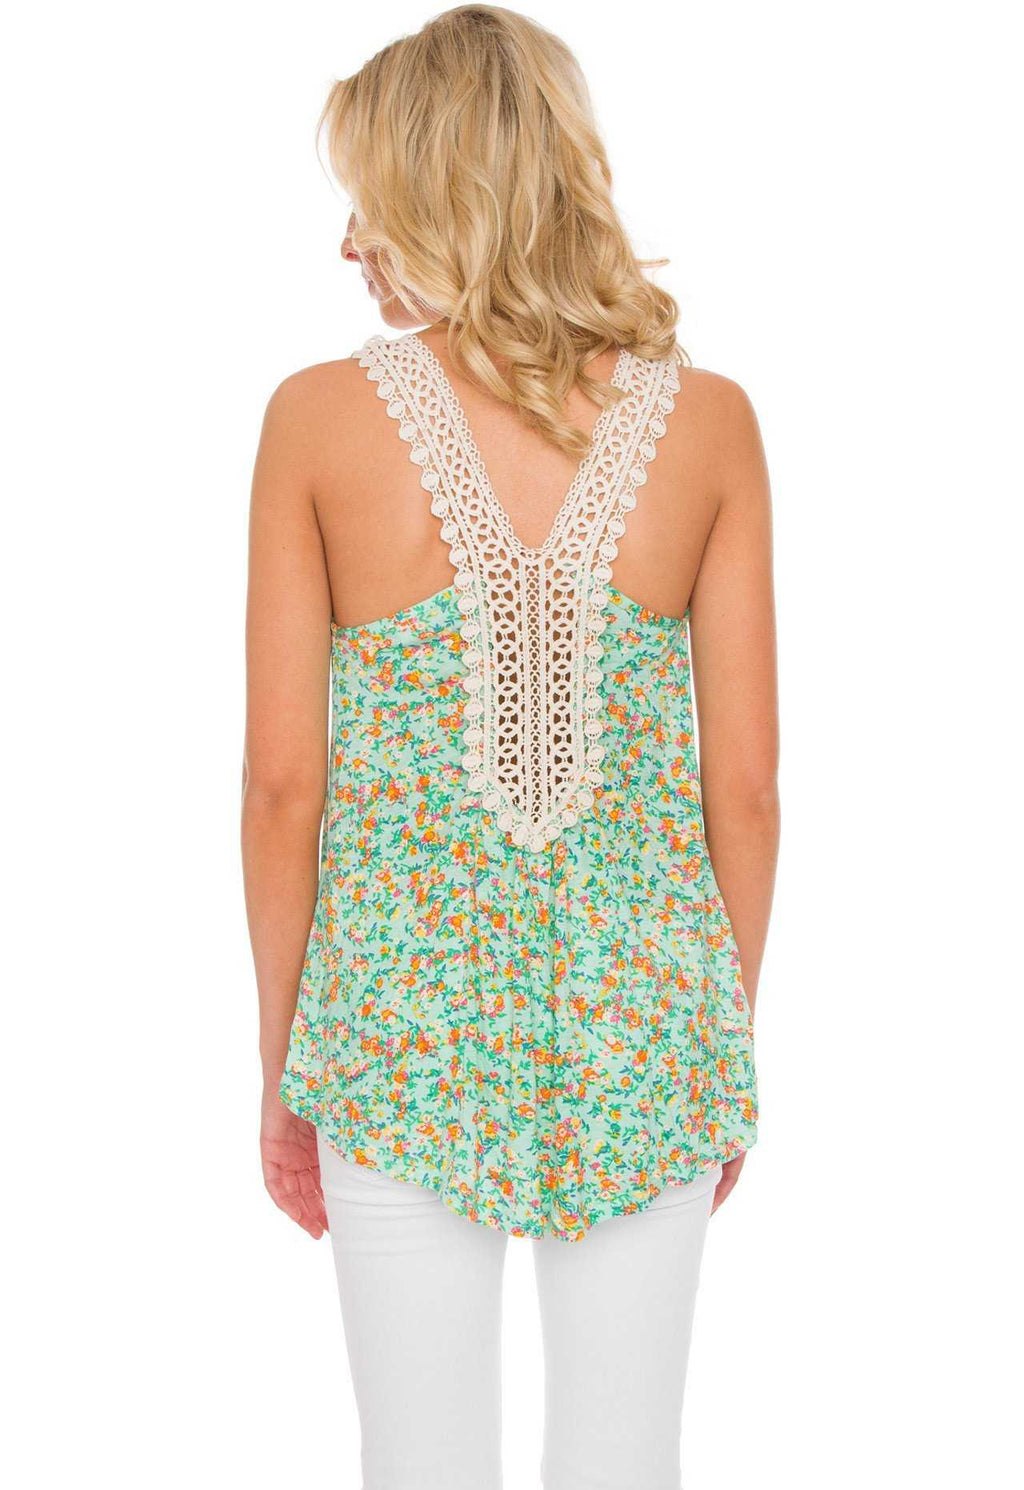 Tops - Tiana Floral Top In Mint